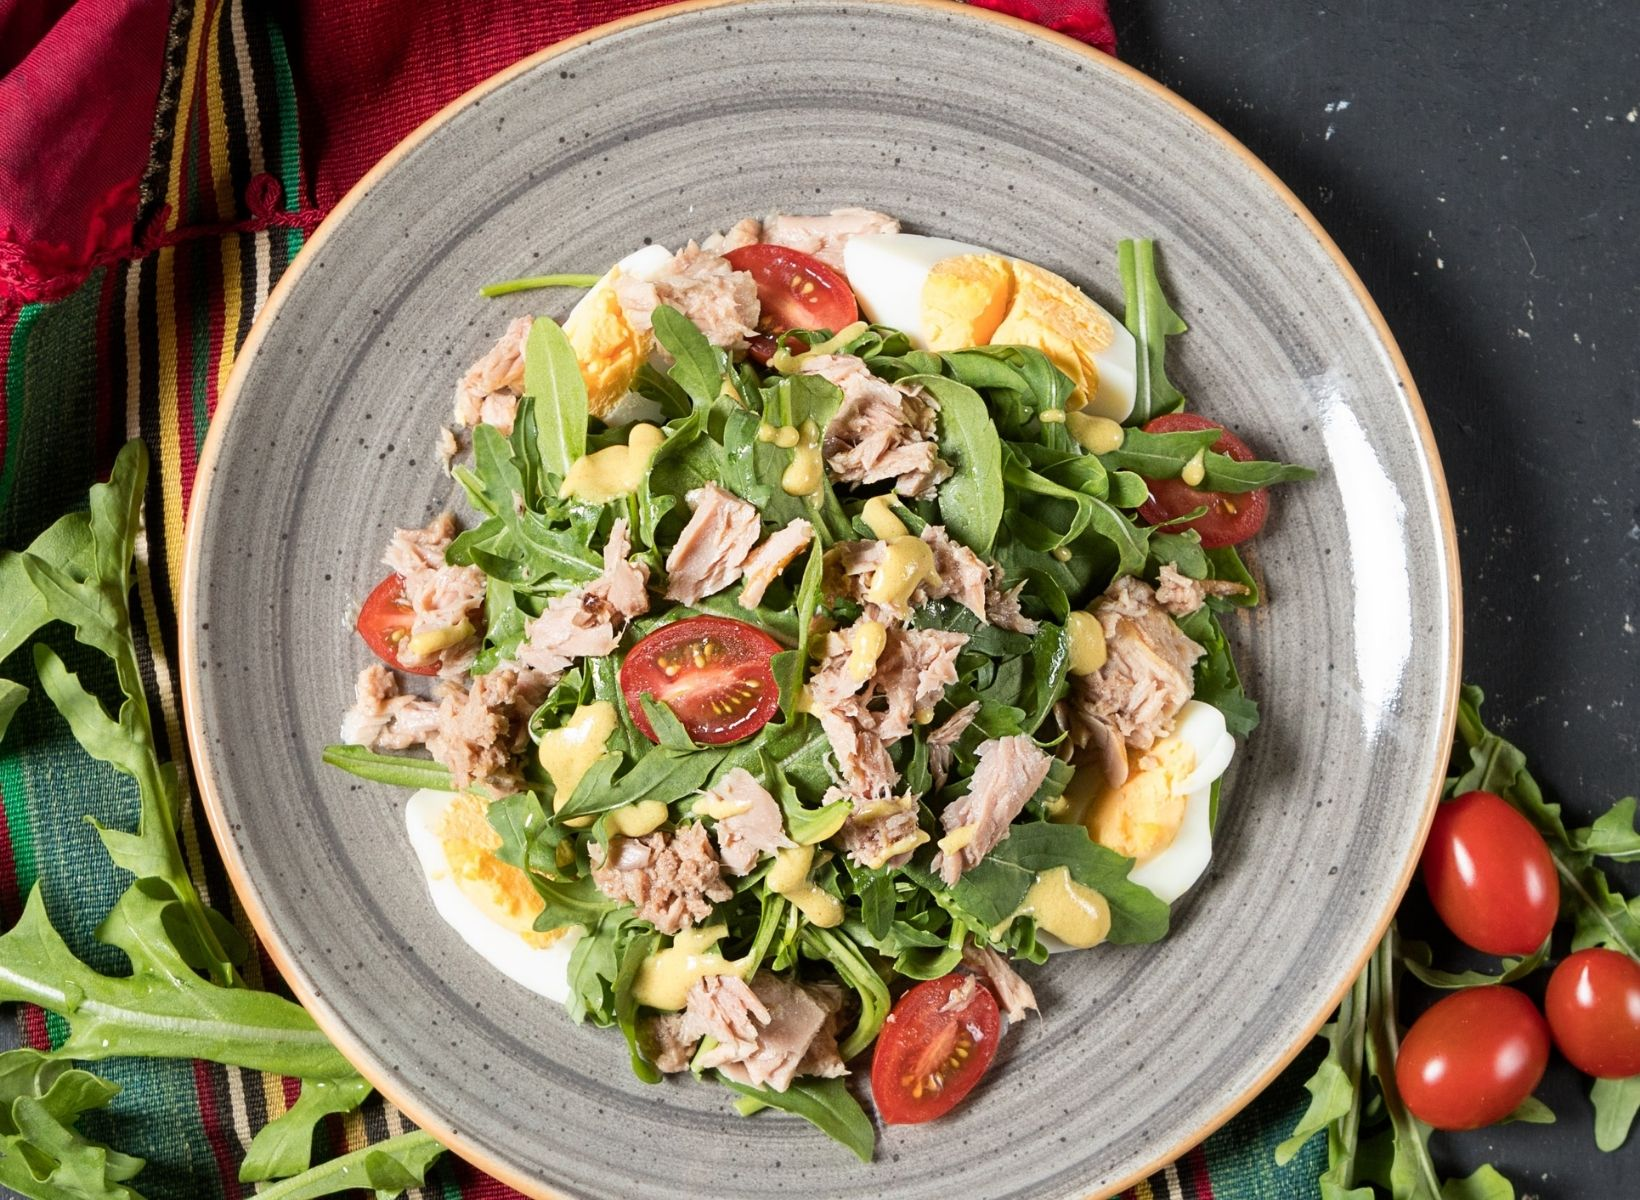 close up of a white plate with a salad made of arugula, lettuce, cherry tomatoes, tuna, and hard boiled eggs